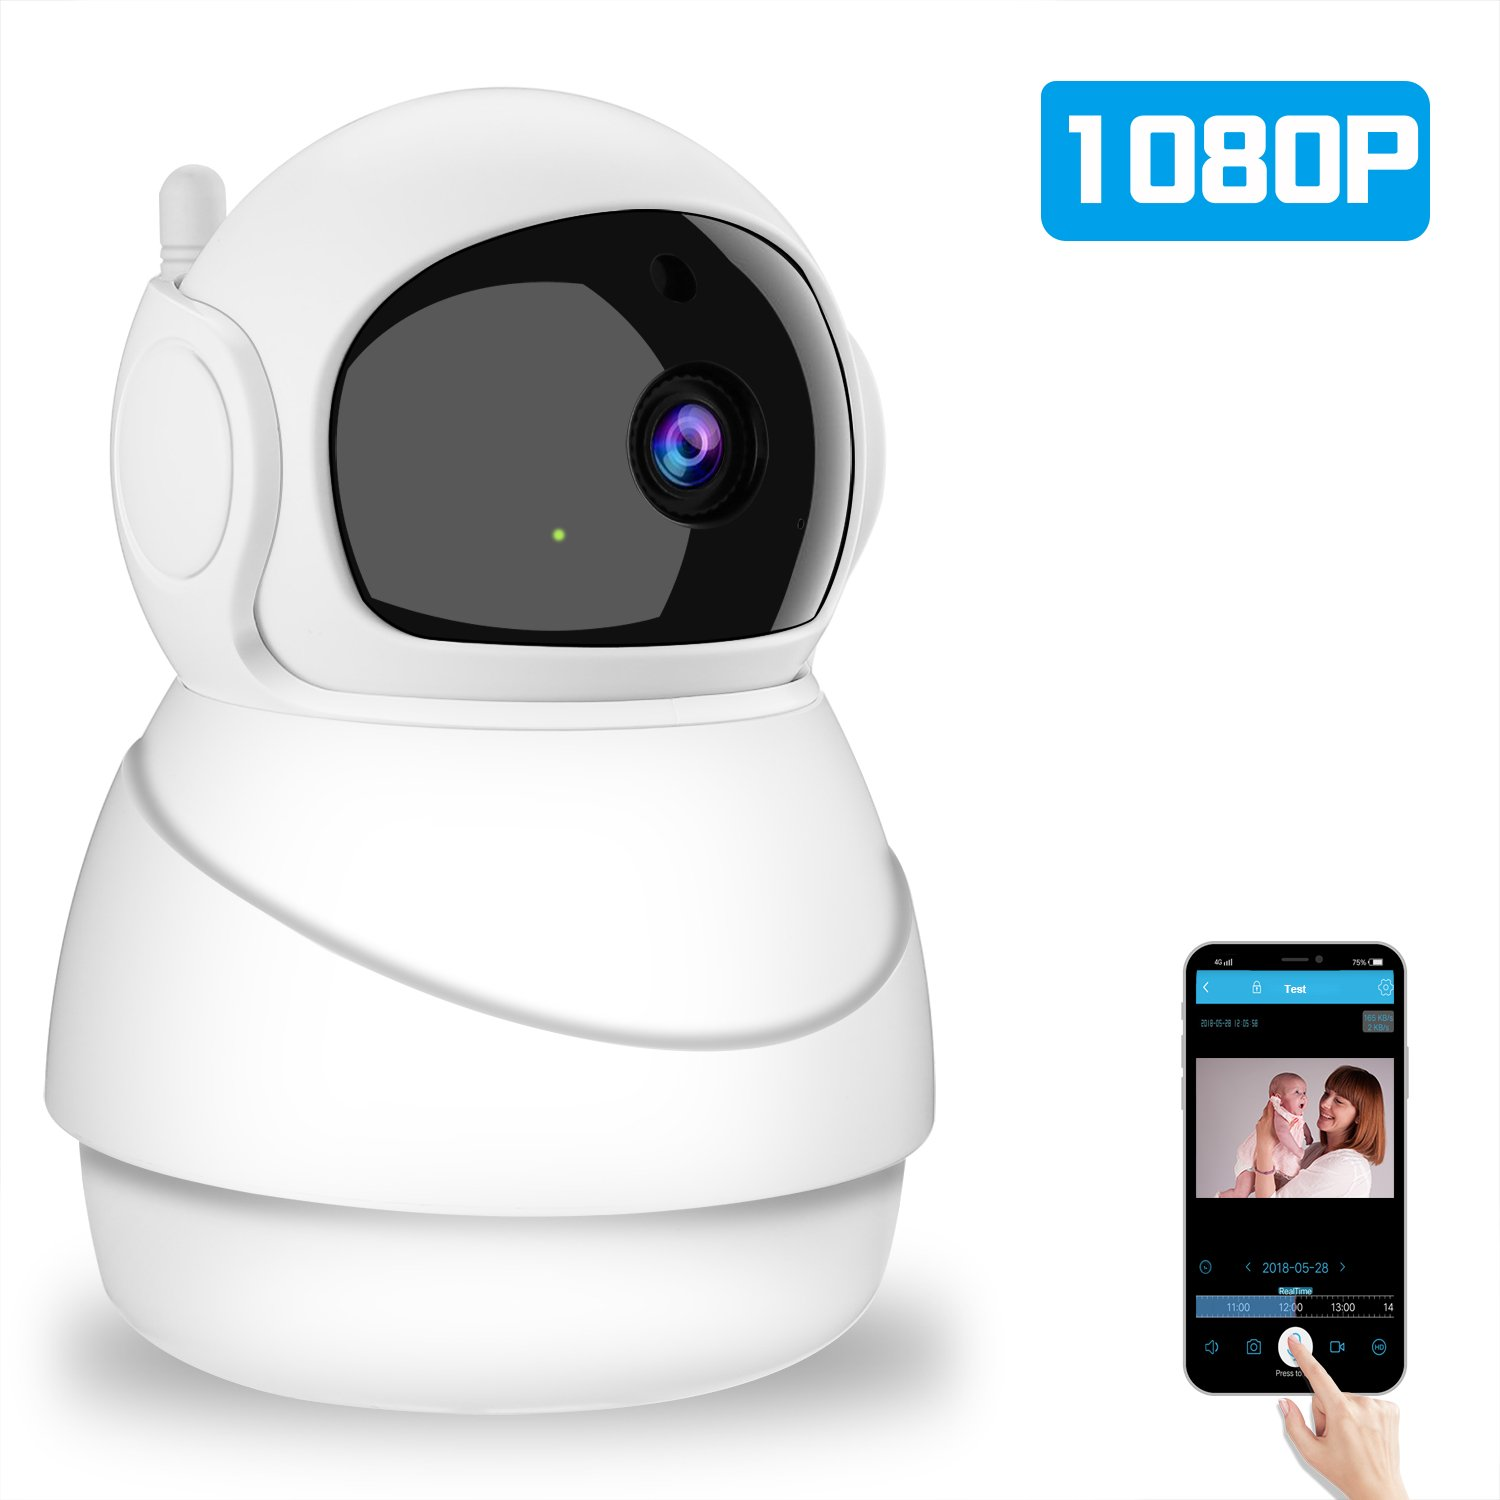 Oxyland Wireless Camera 1080P for Home Security Indoor WiFi Camera with 2 Way Audio Night Vision Motion Detection and Zoom/Pan/Tilt Surveillance Camera for Pet/Baby/Elder Monitor